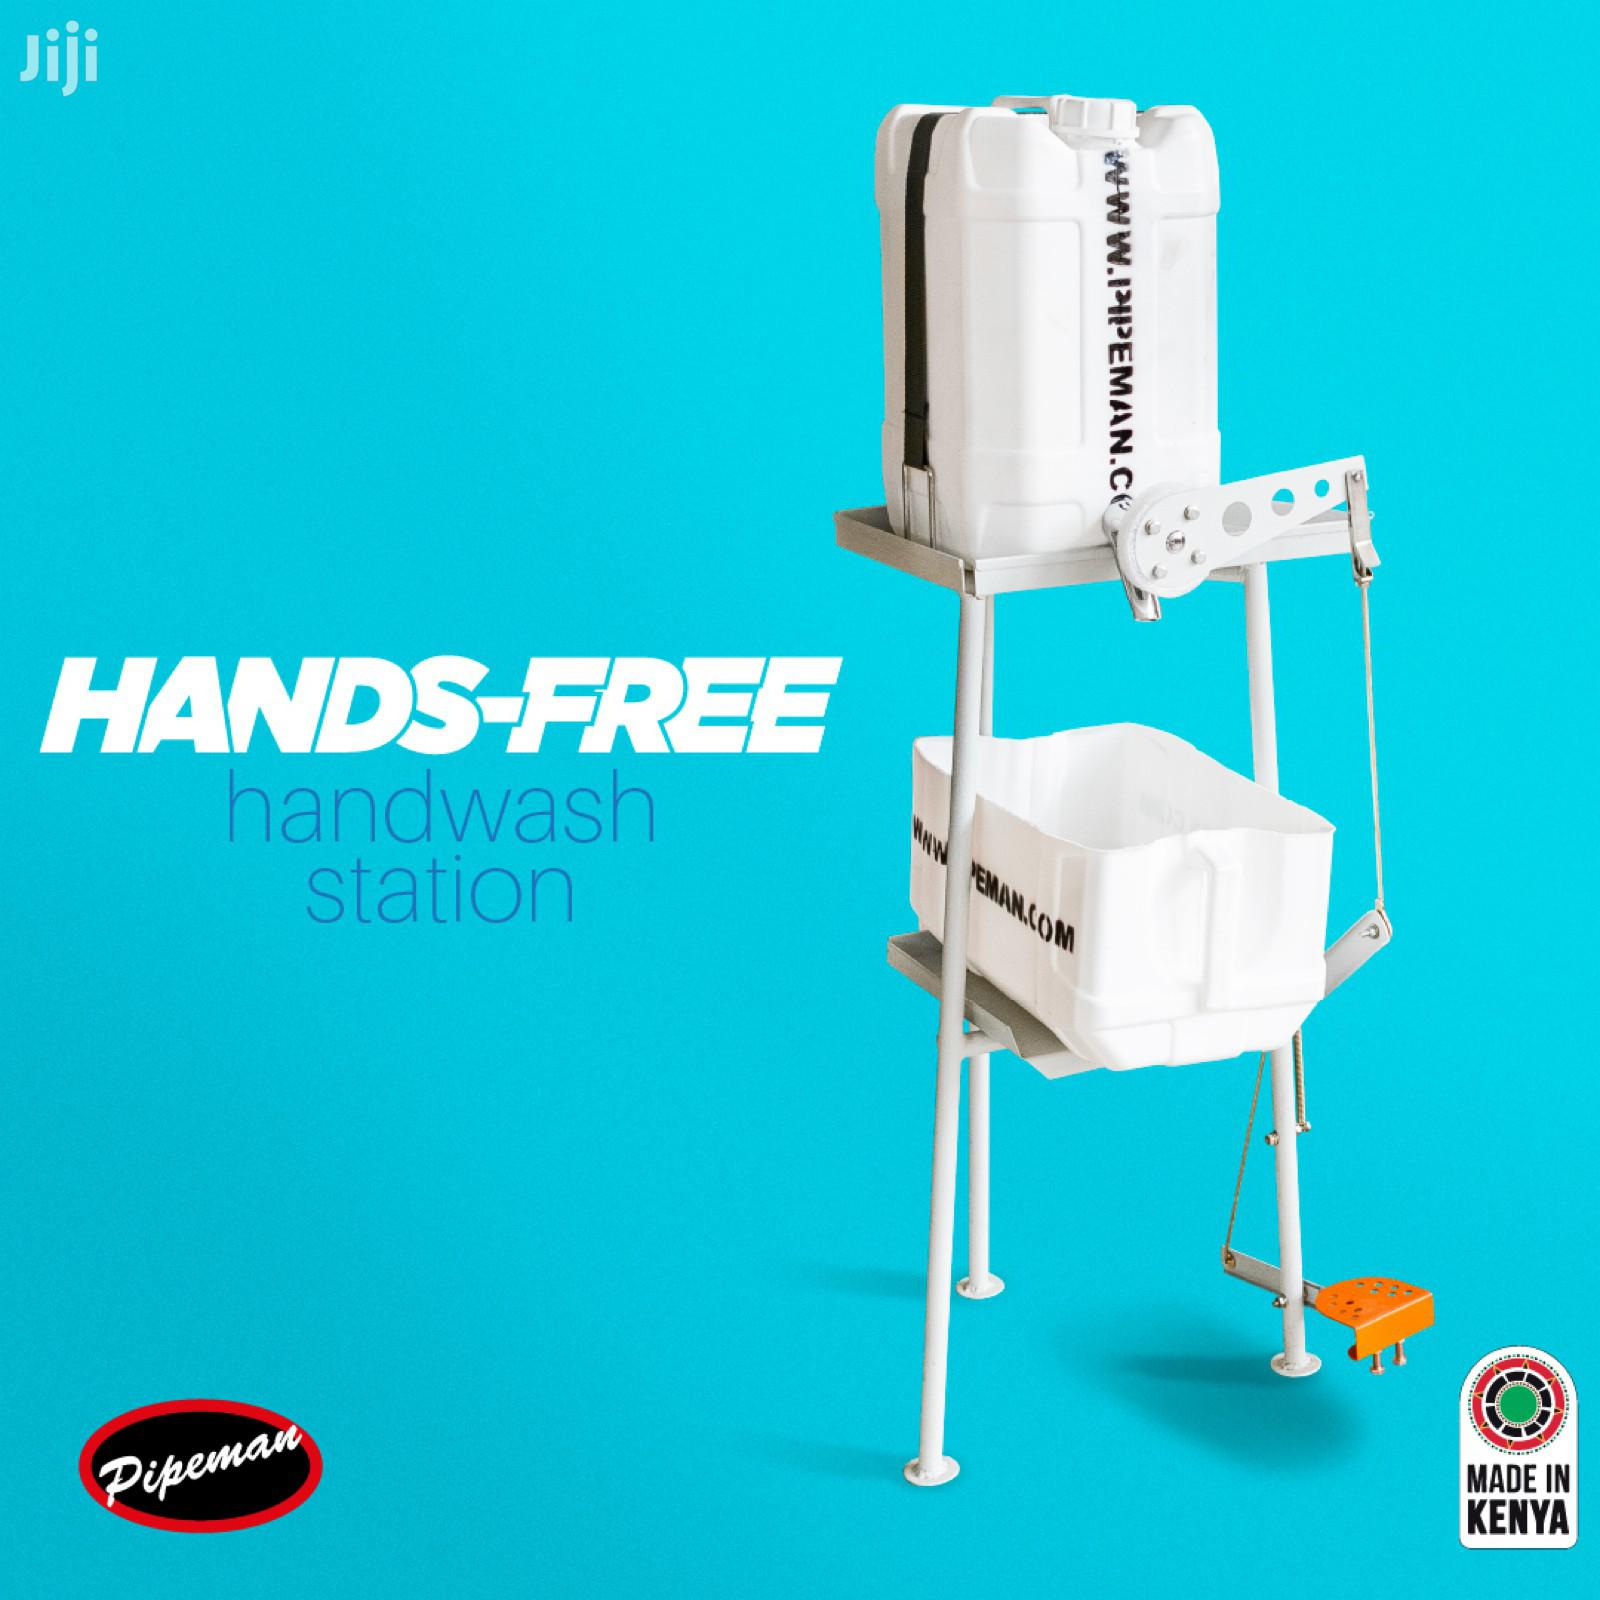 Pipeman, Hands- Free Hand Wash Station